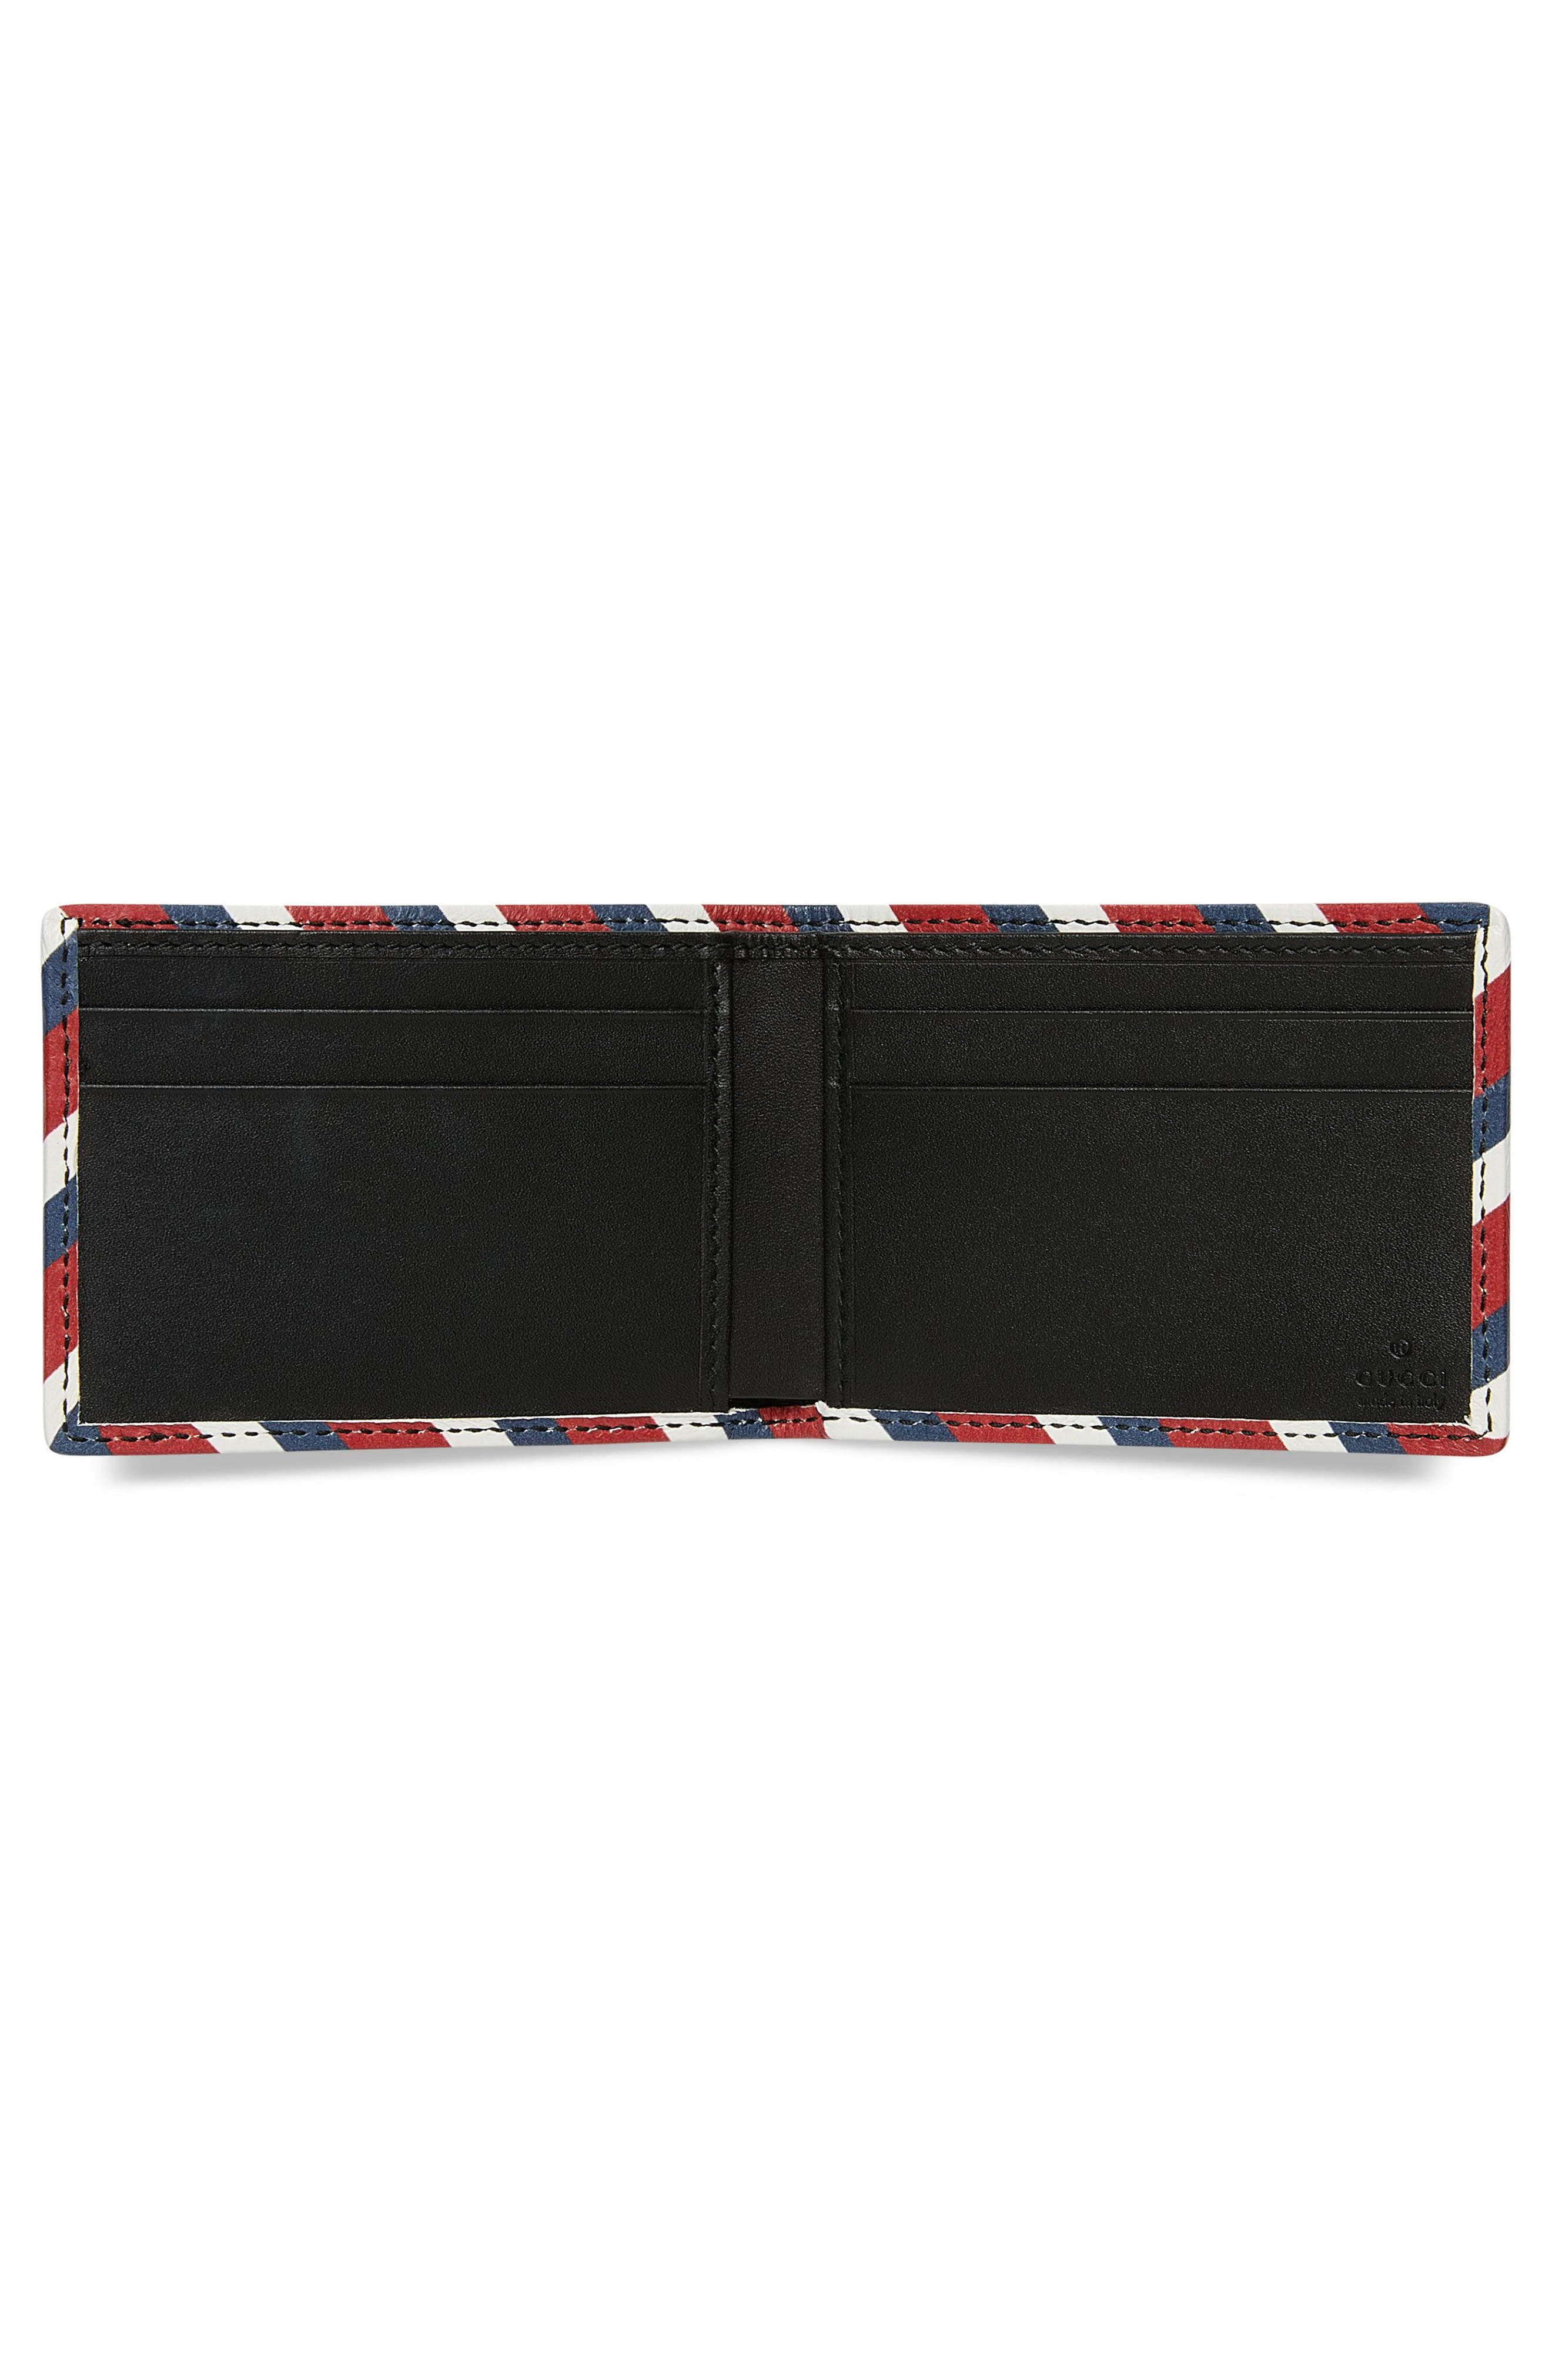 GG Supreme Patch Wallet,                             Alternate thumbnail 2, color,                             Black